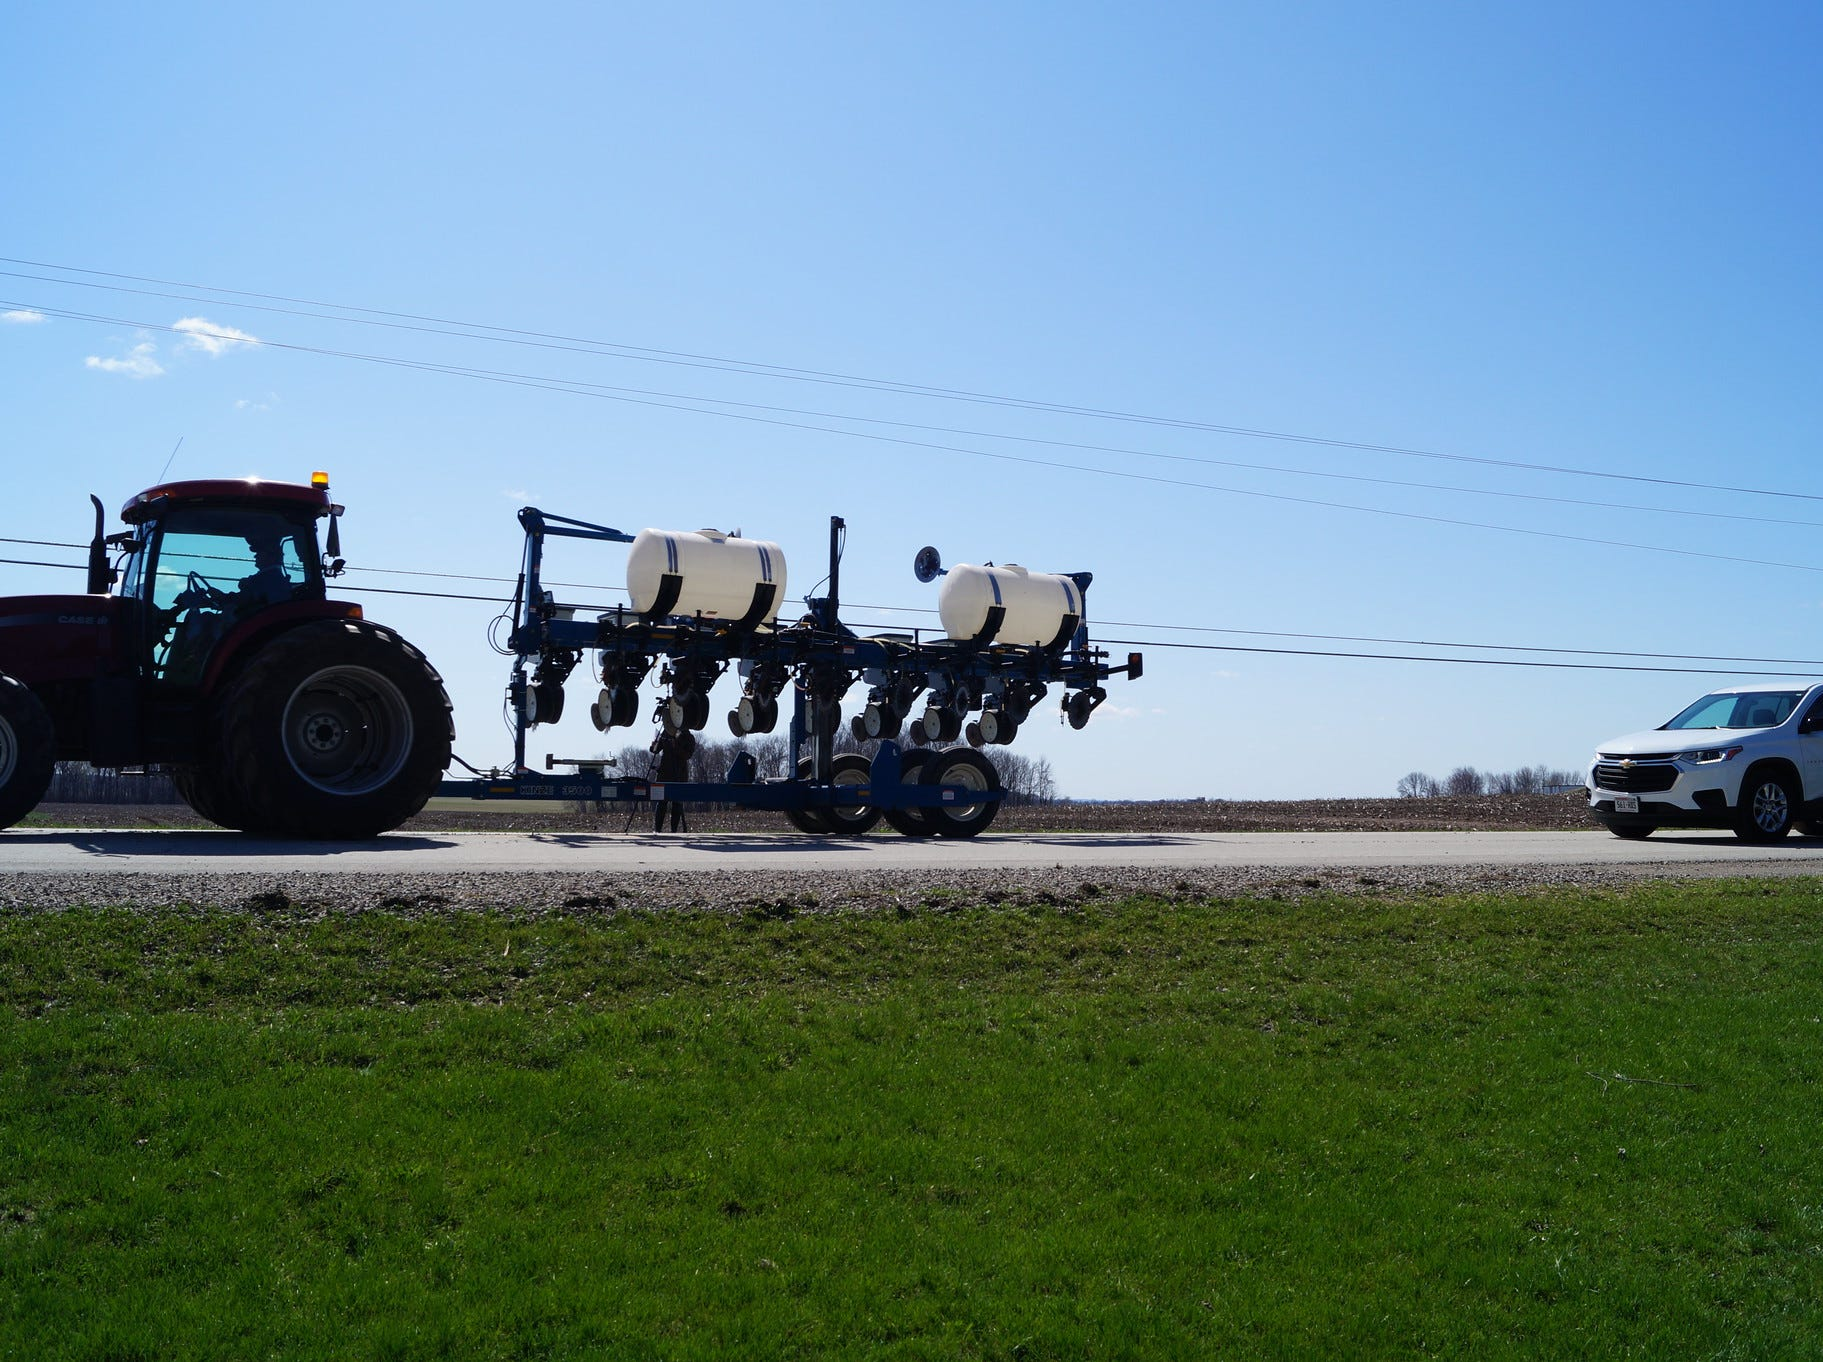 Farm equipment can legally operate on any roadway in Wisconsin so long as it is in compliance with weight restrictions and follows proper lighting and marking procedures, according to the WI DOT.